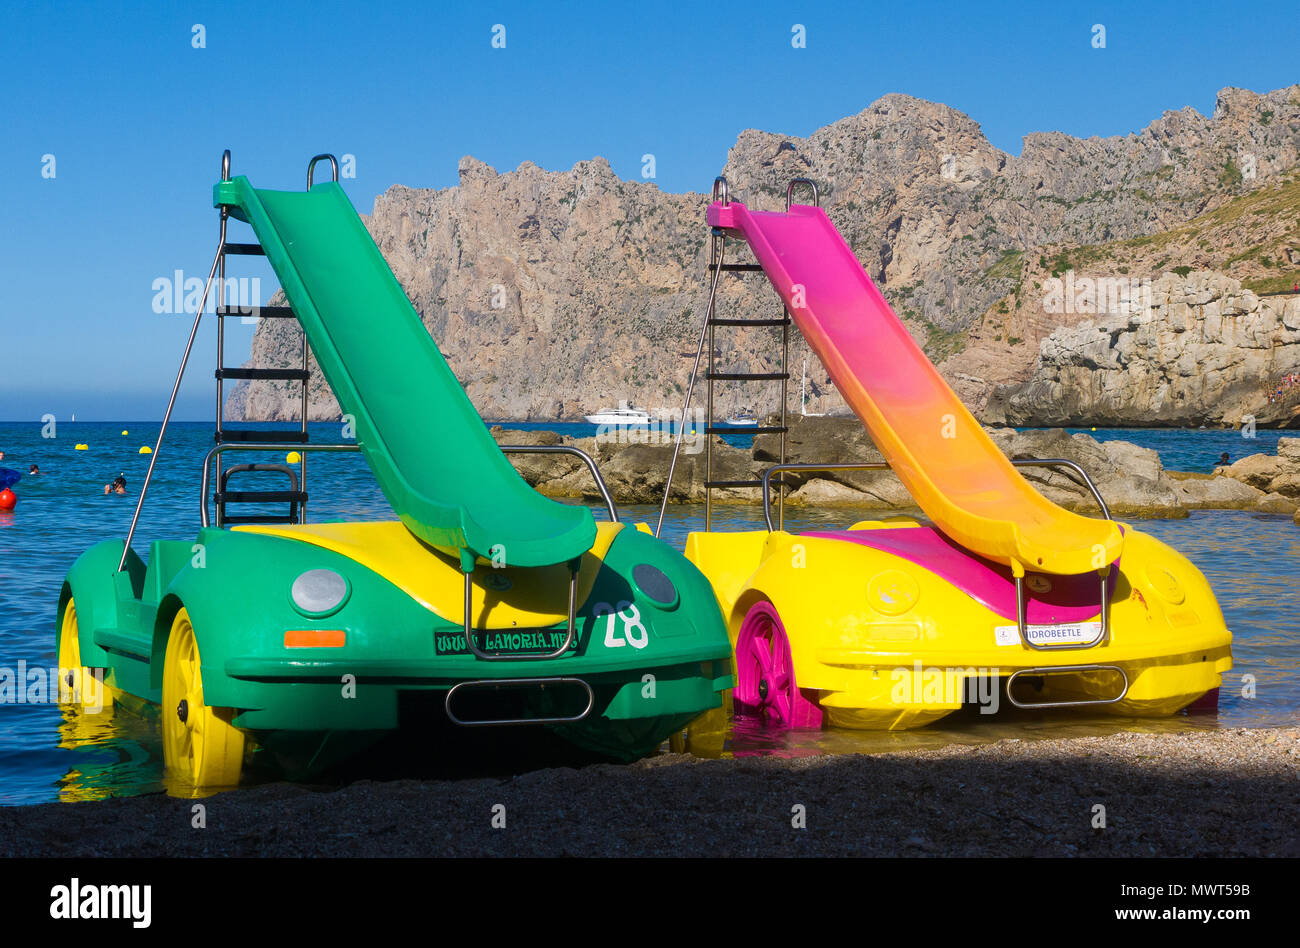 Two brightly coloured pedalos parked on a beach in Cala San Vicente in Mallorca, Spain. Stock Photo